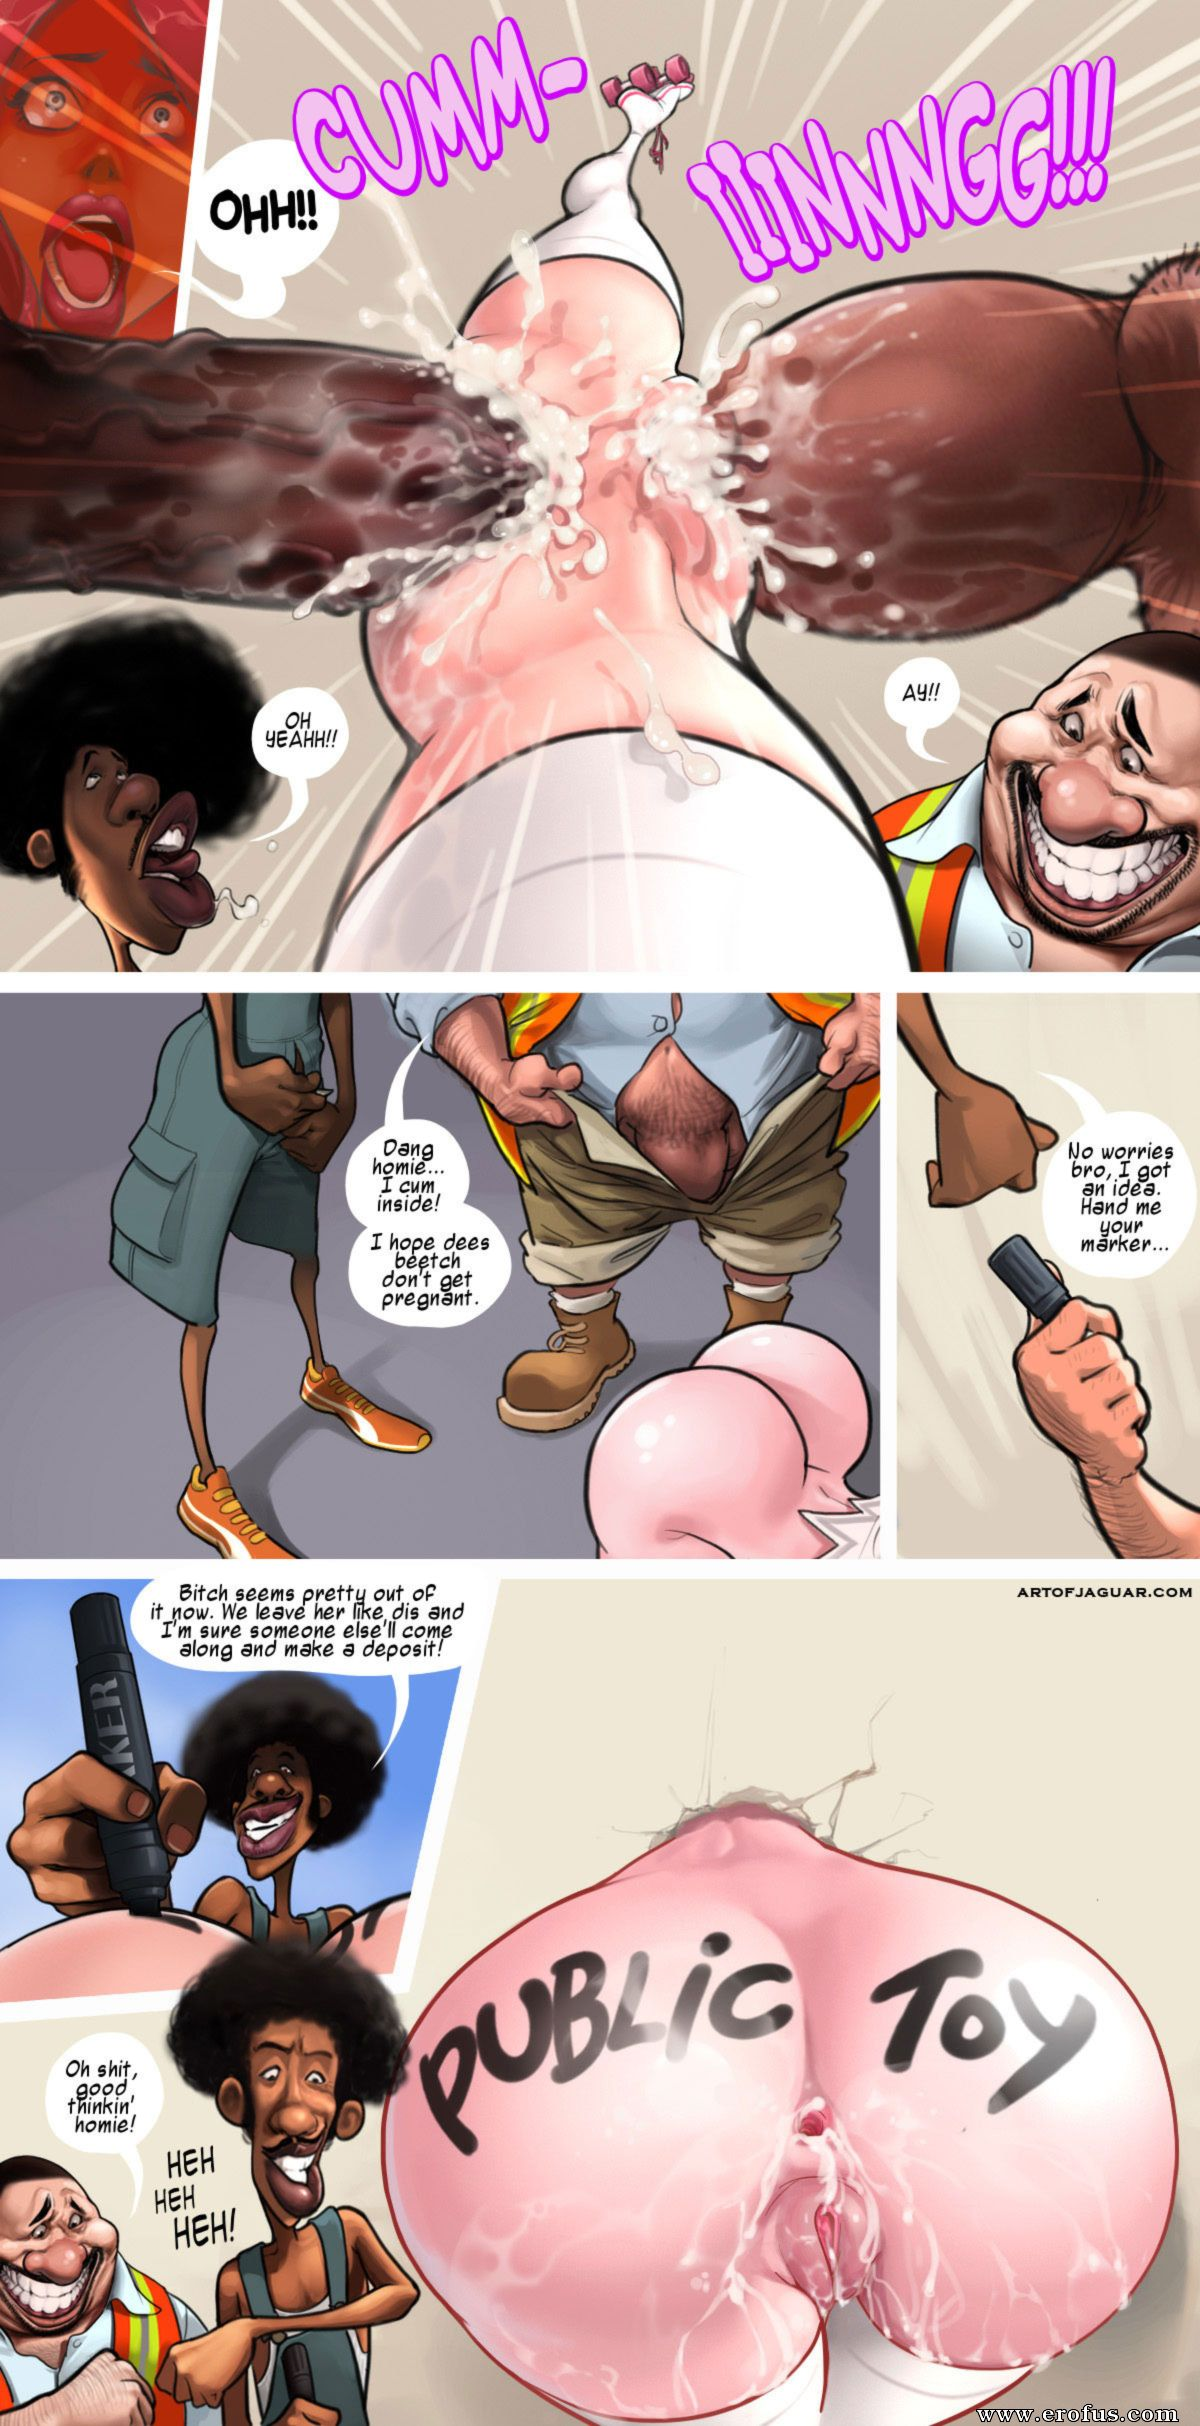 Public sex comics, facial hair removal homemade